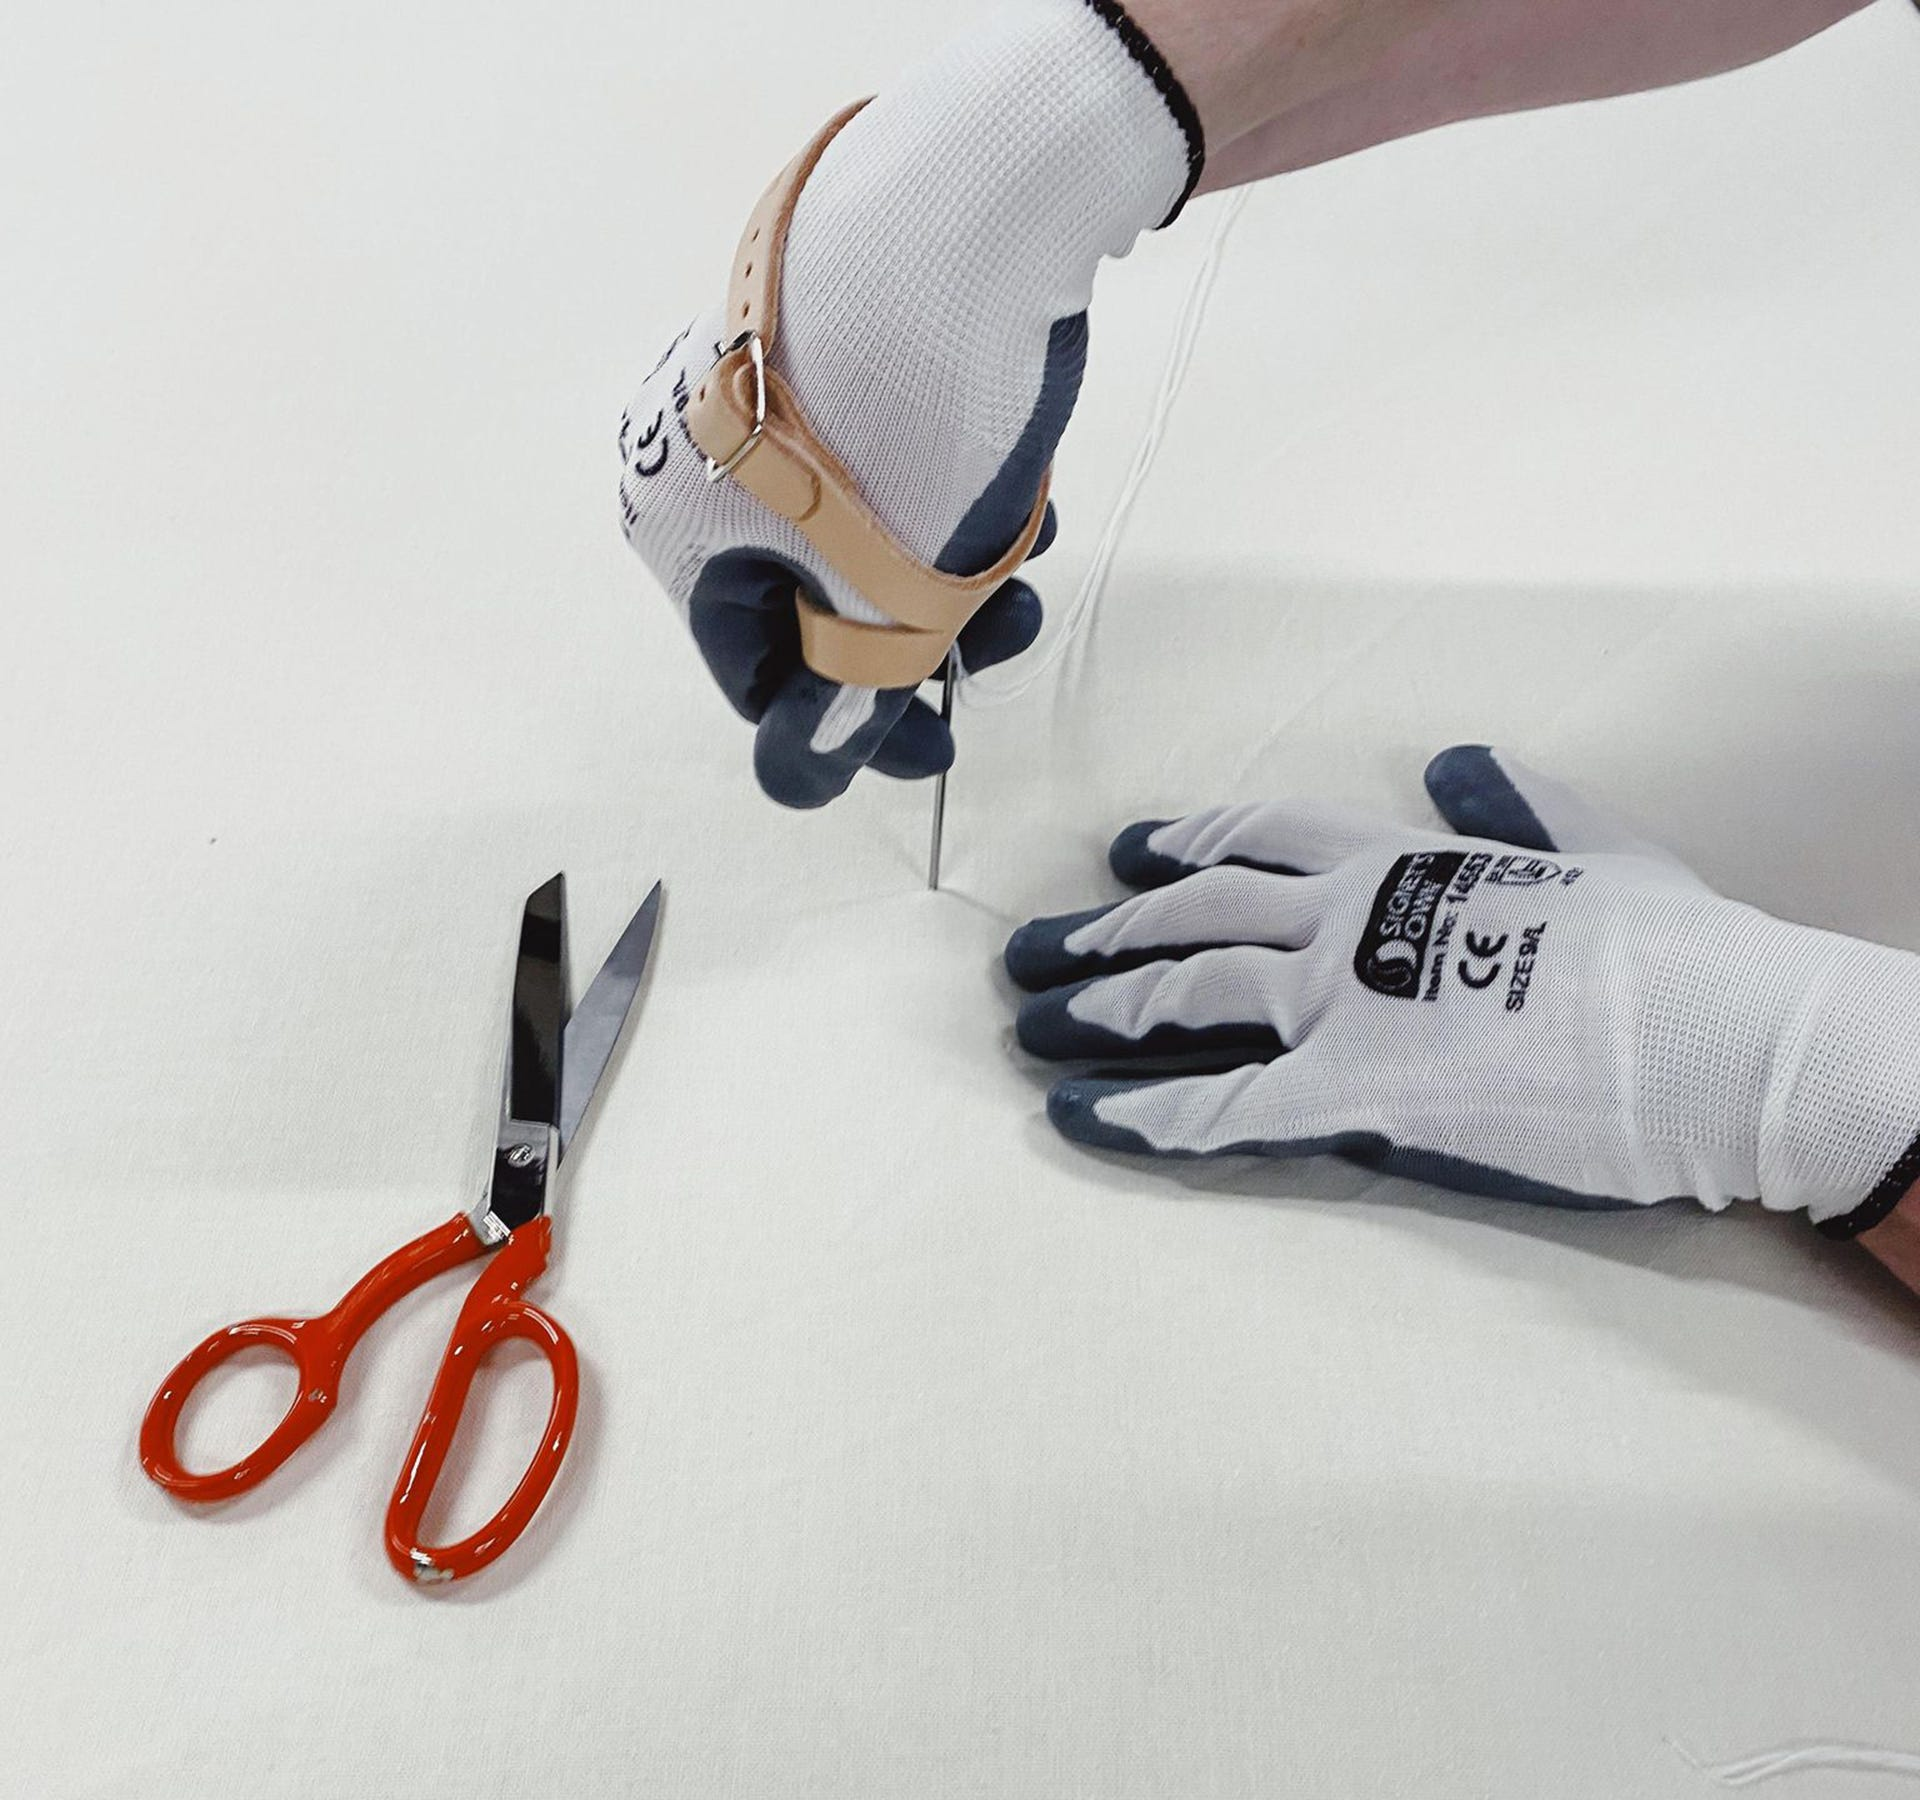 Tufting a mattress with Signet's Own Foam Nitrile Gloves